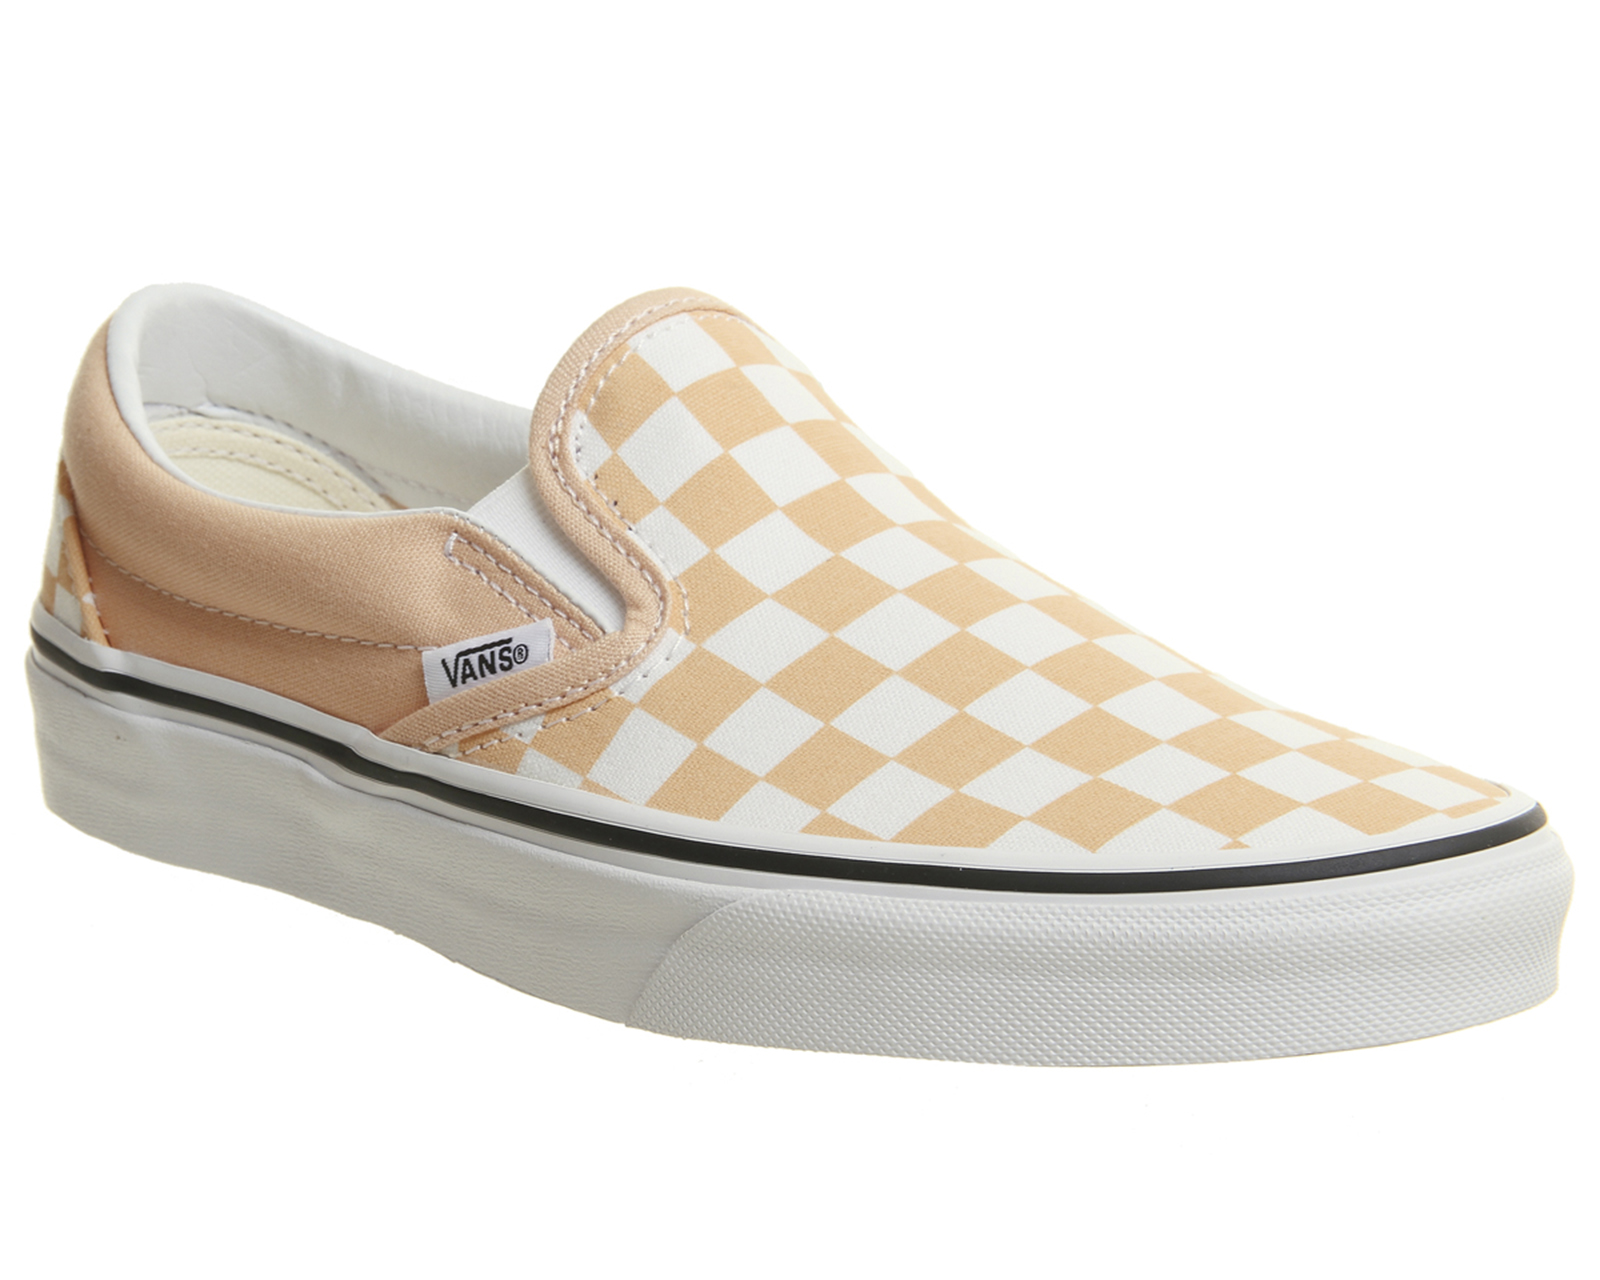 Sentinel Womens Vans Vans Classic Slip On Trainers Apricot True White  Trainers Shoes 14e56c9cf